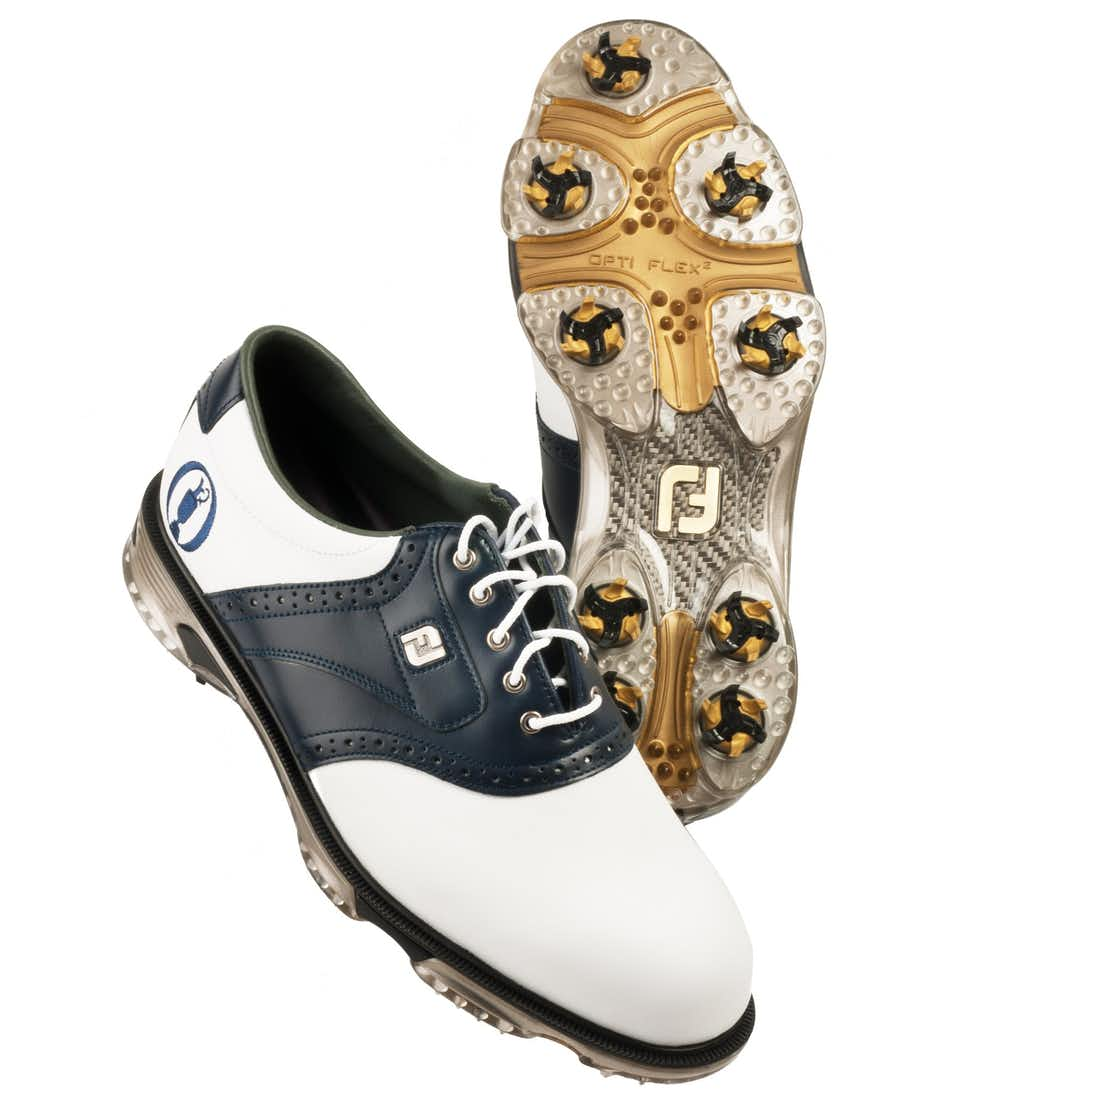 The Open FootJoy Golf Shoes (Regular Fit) - White